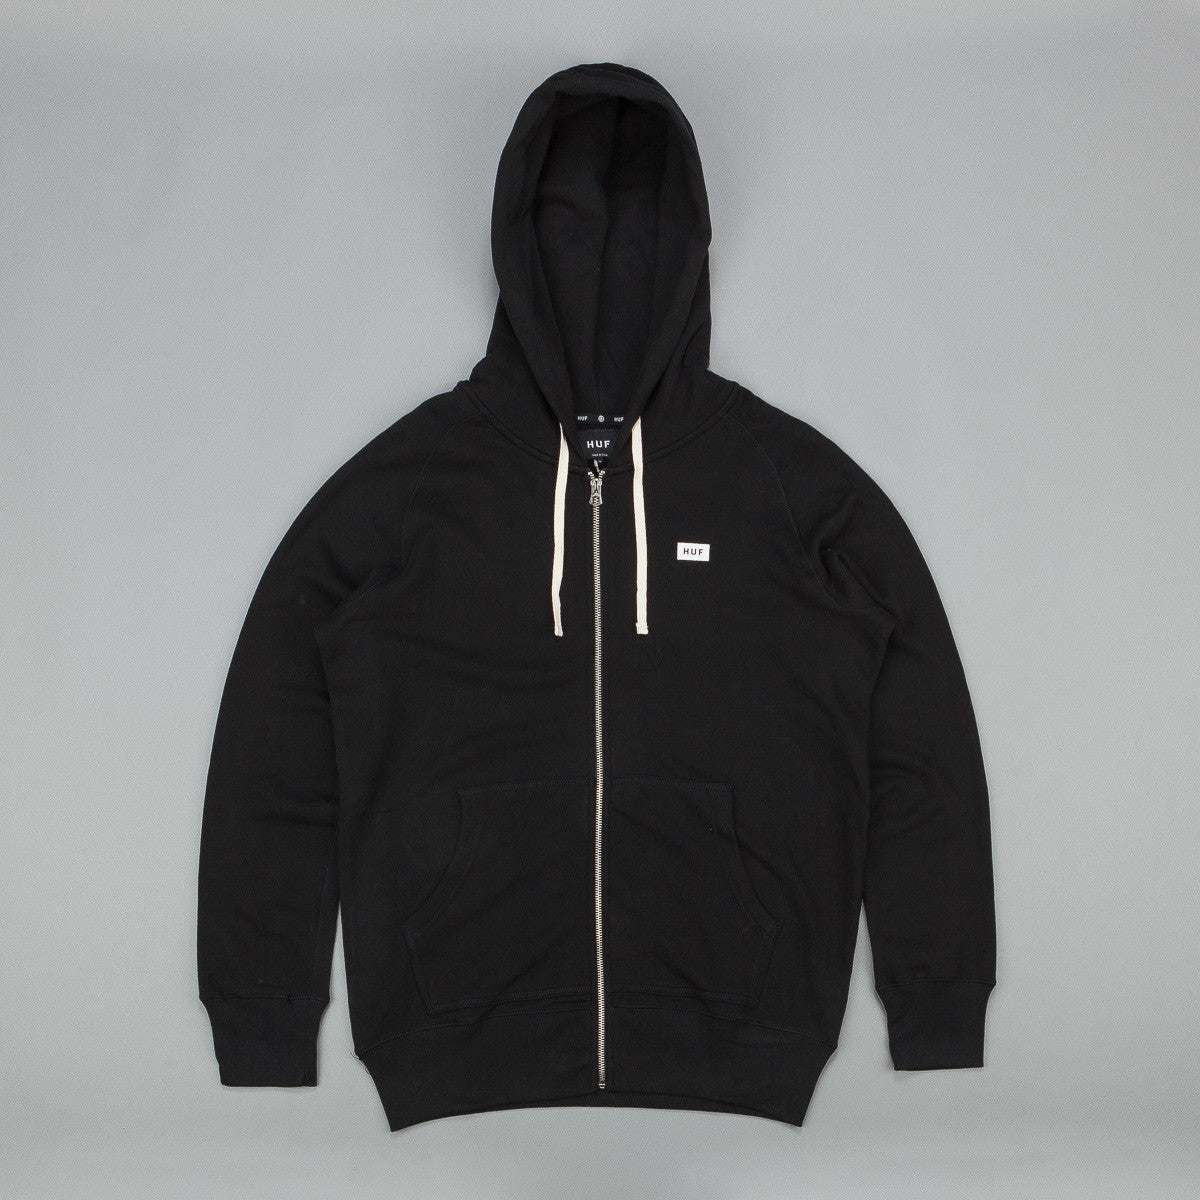 Huf Cadet Zip Up Hooded Sweatshirt